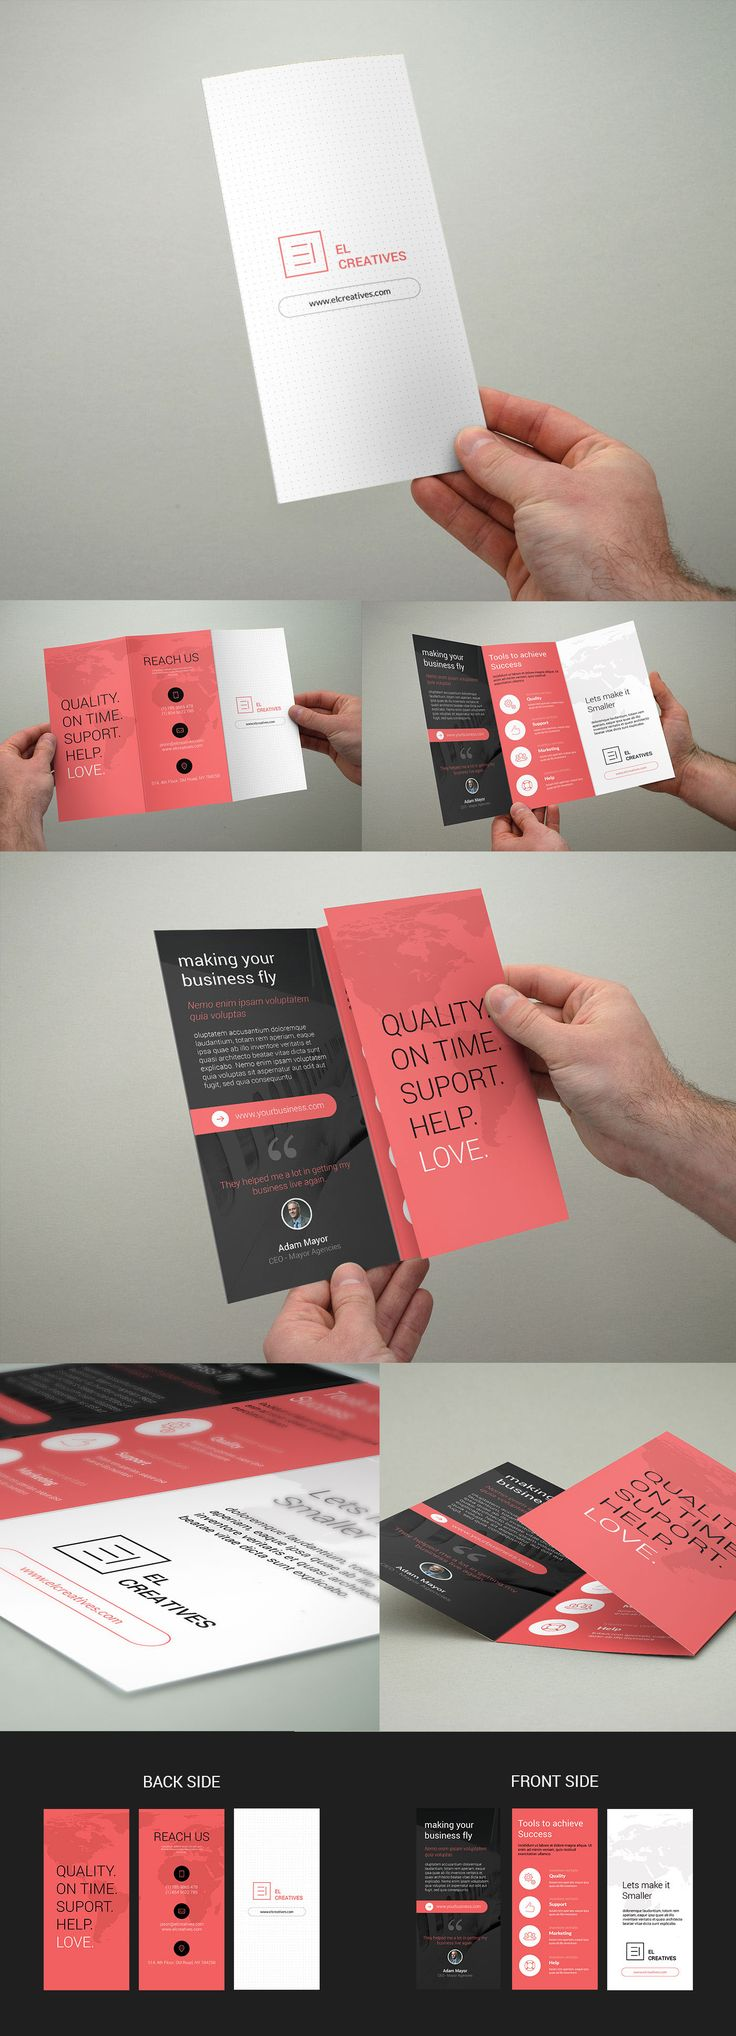 Minimal Corporate Trifold Brochure on Behance